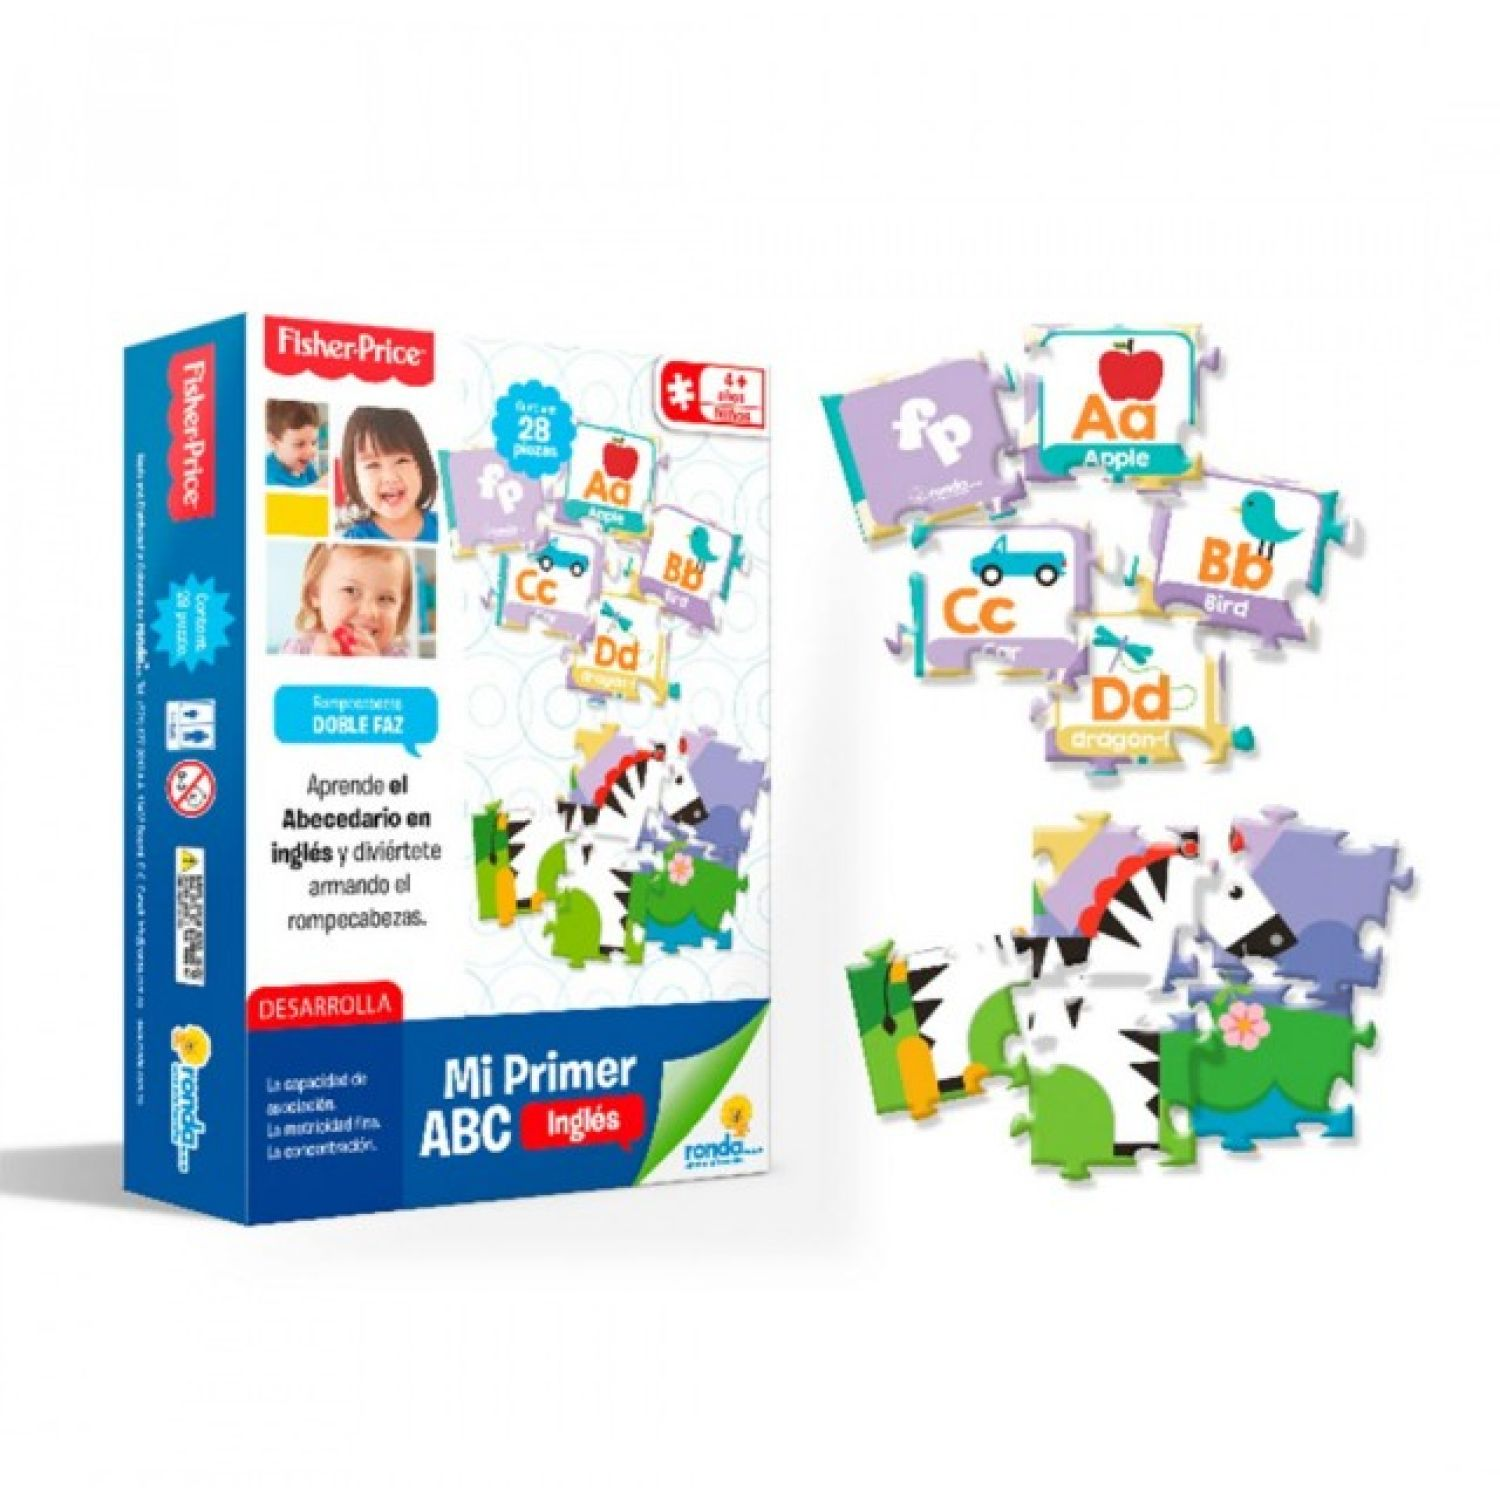 Fisher Price Mi Primer Abc MULTICOLOR Rompecabezas 3-d